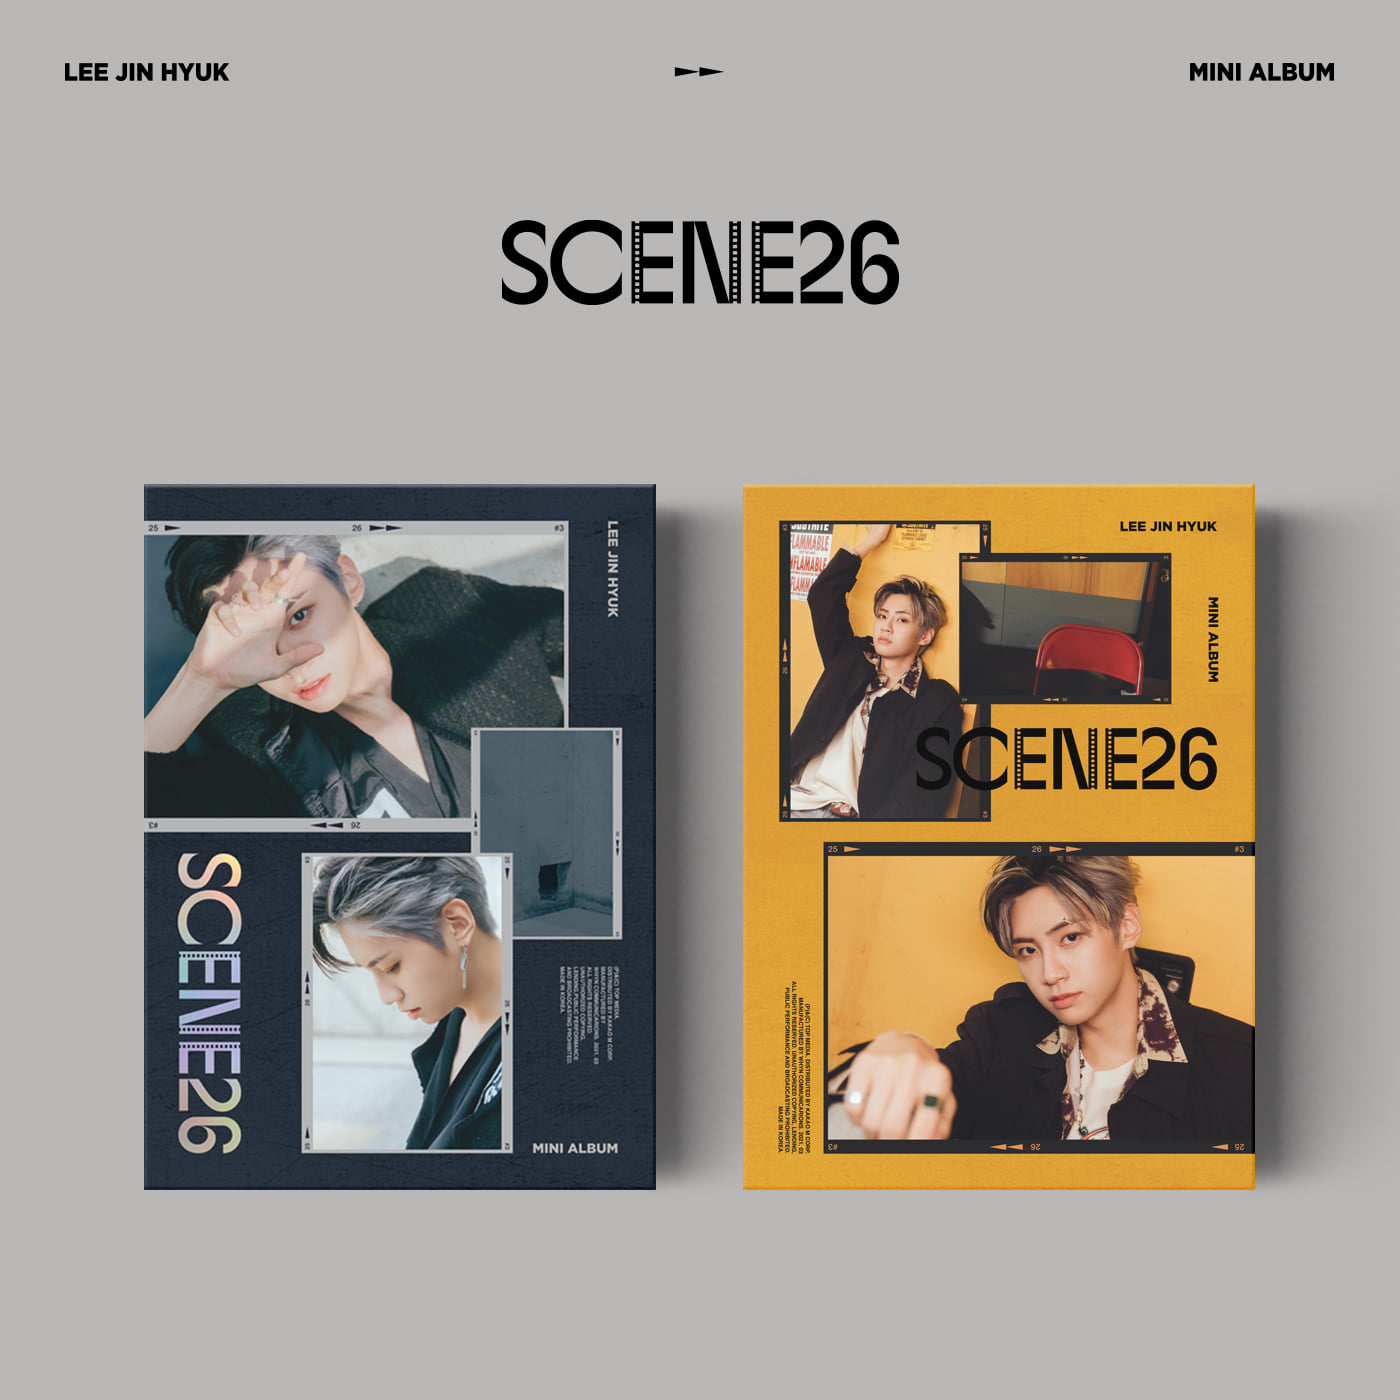 이진혁(LEE JIN HYUK) - Mini Album [SCENE26] (REEL ver.+ ROLL ver. = 2CD SET)케이팝스토어(kpop store)